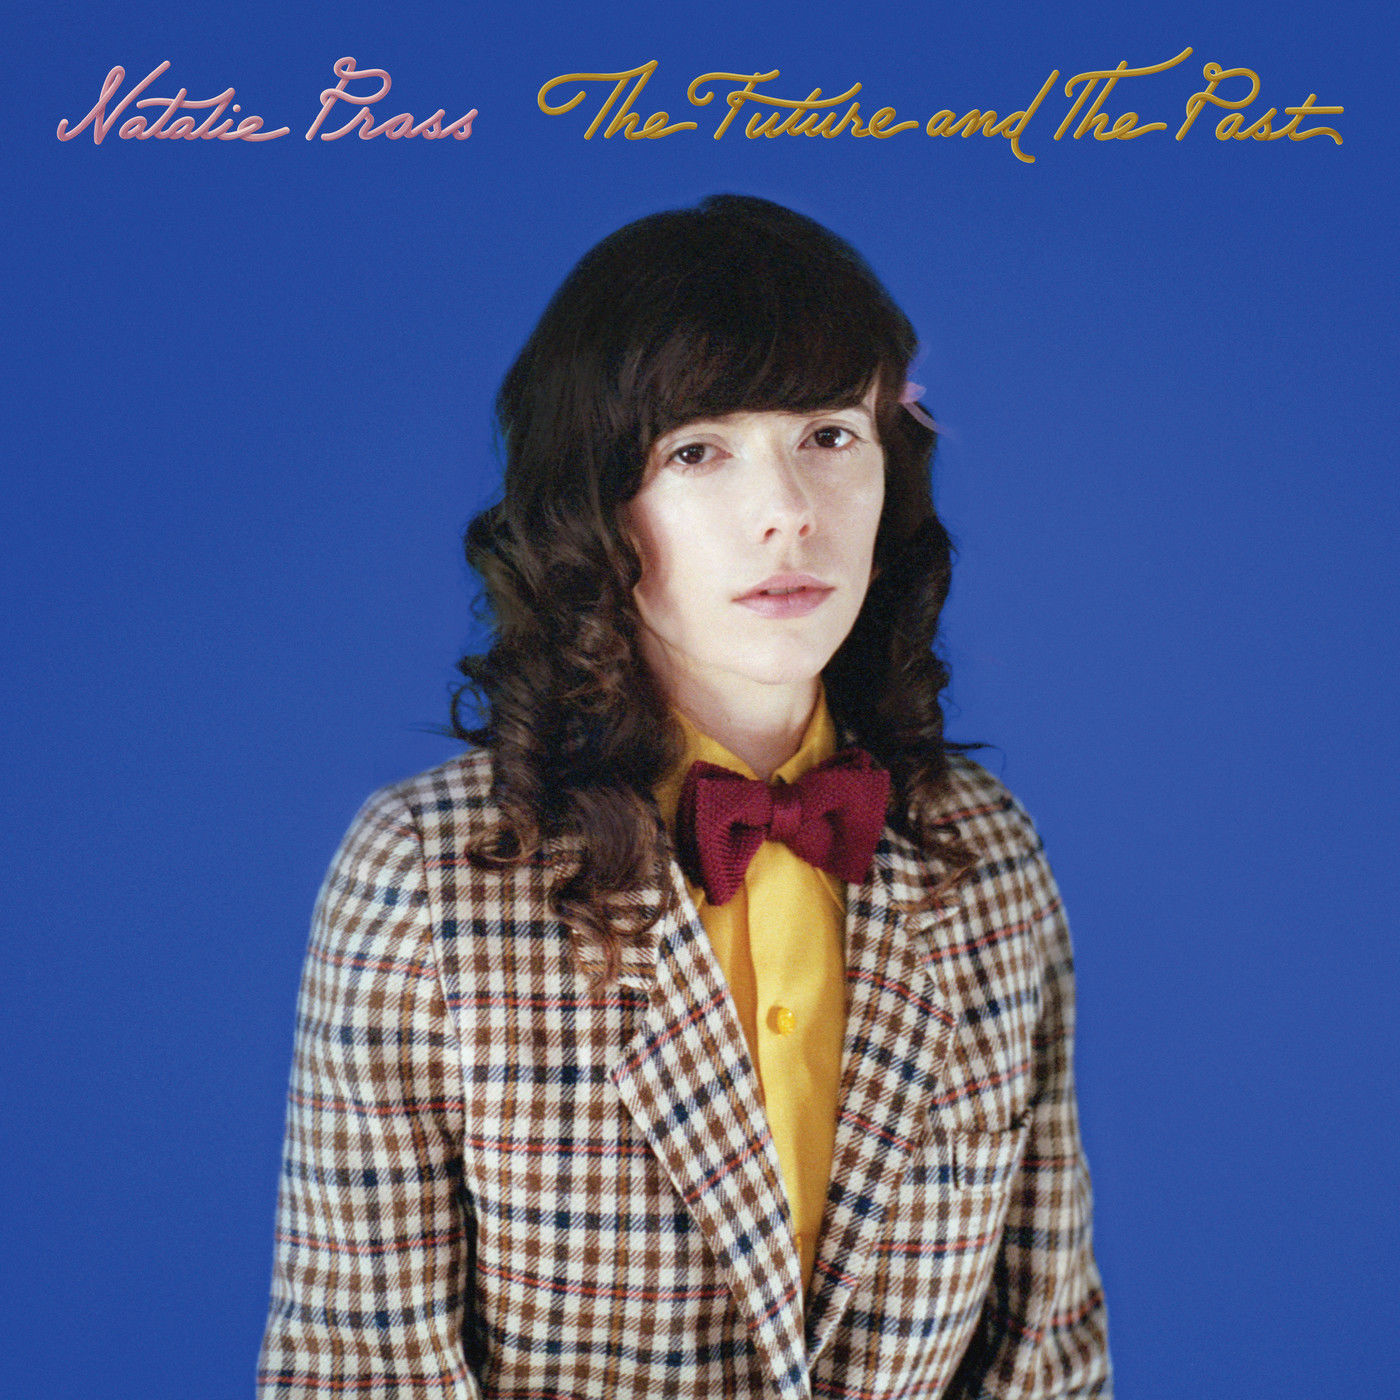 Natalie Prass -- The Future and the Past